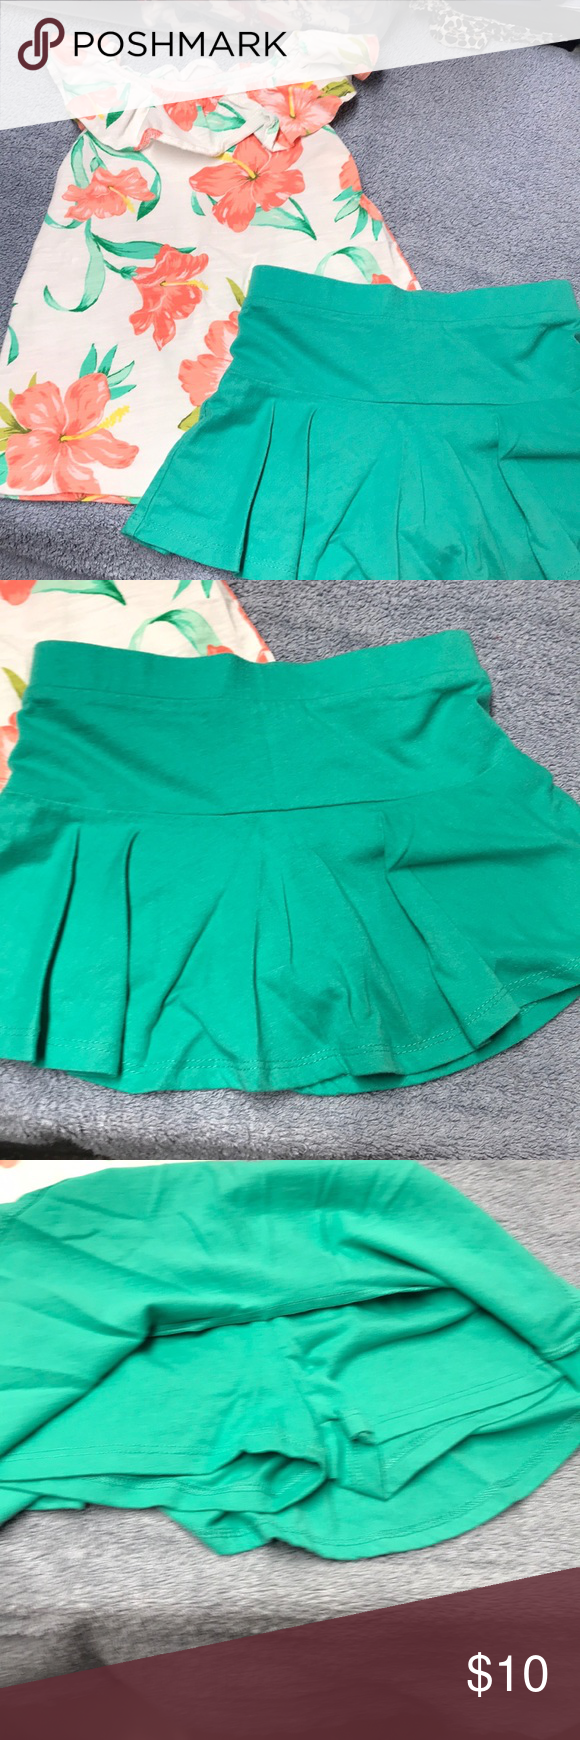 45af655740a5 Orangish Peach Hibiscus Flutter tank outfit EUC Carter's tank with  perfectly matched green okie dokie skort VGUC Carter's Matching Sets